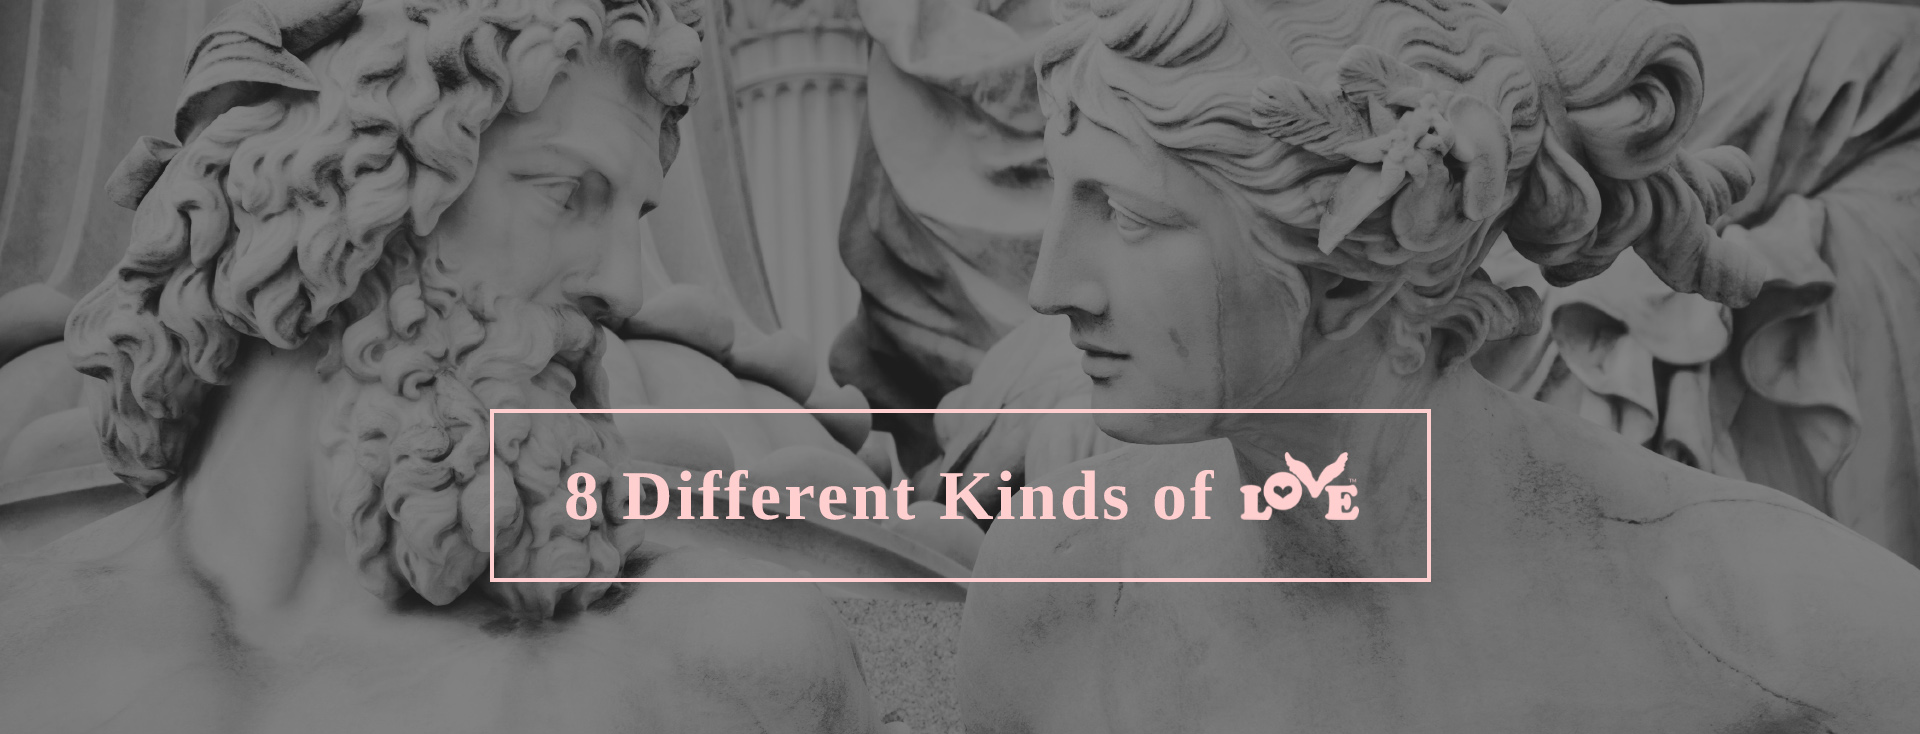 8 Different Kinds of Love Defined by Greeks